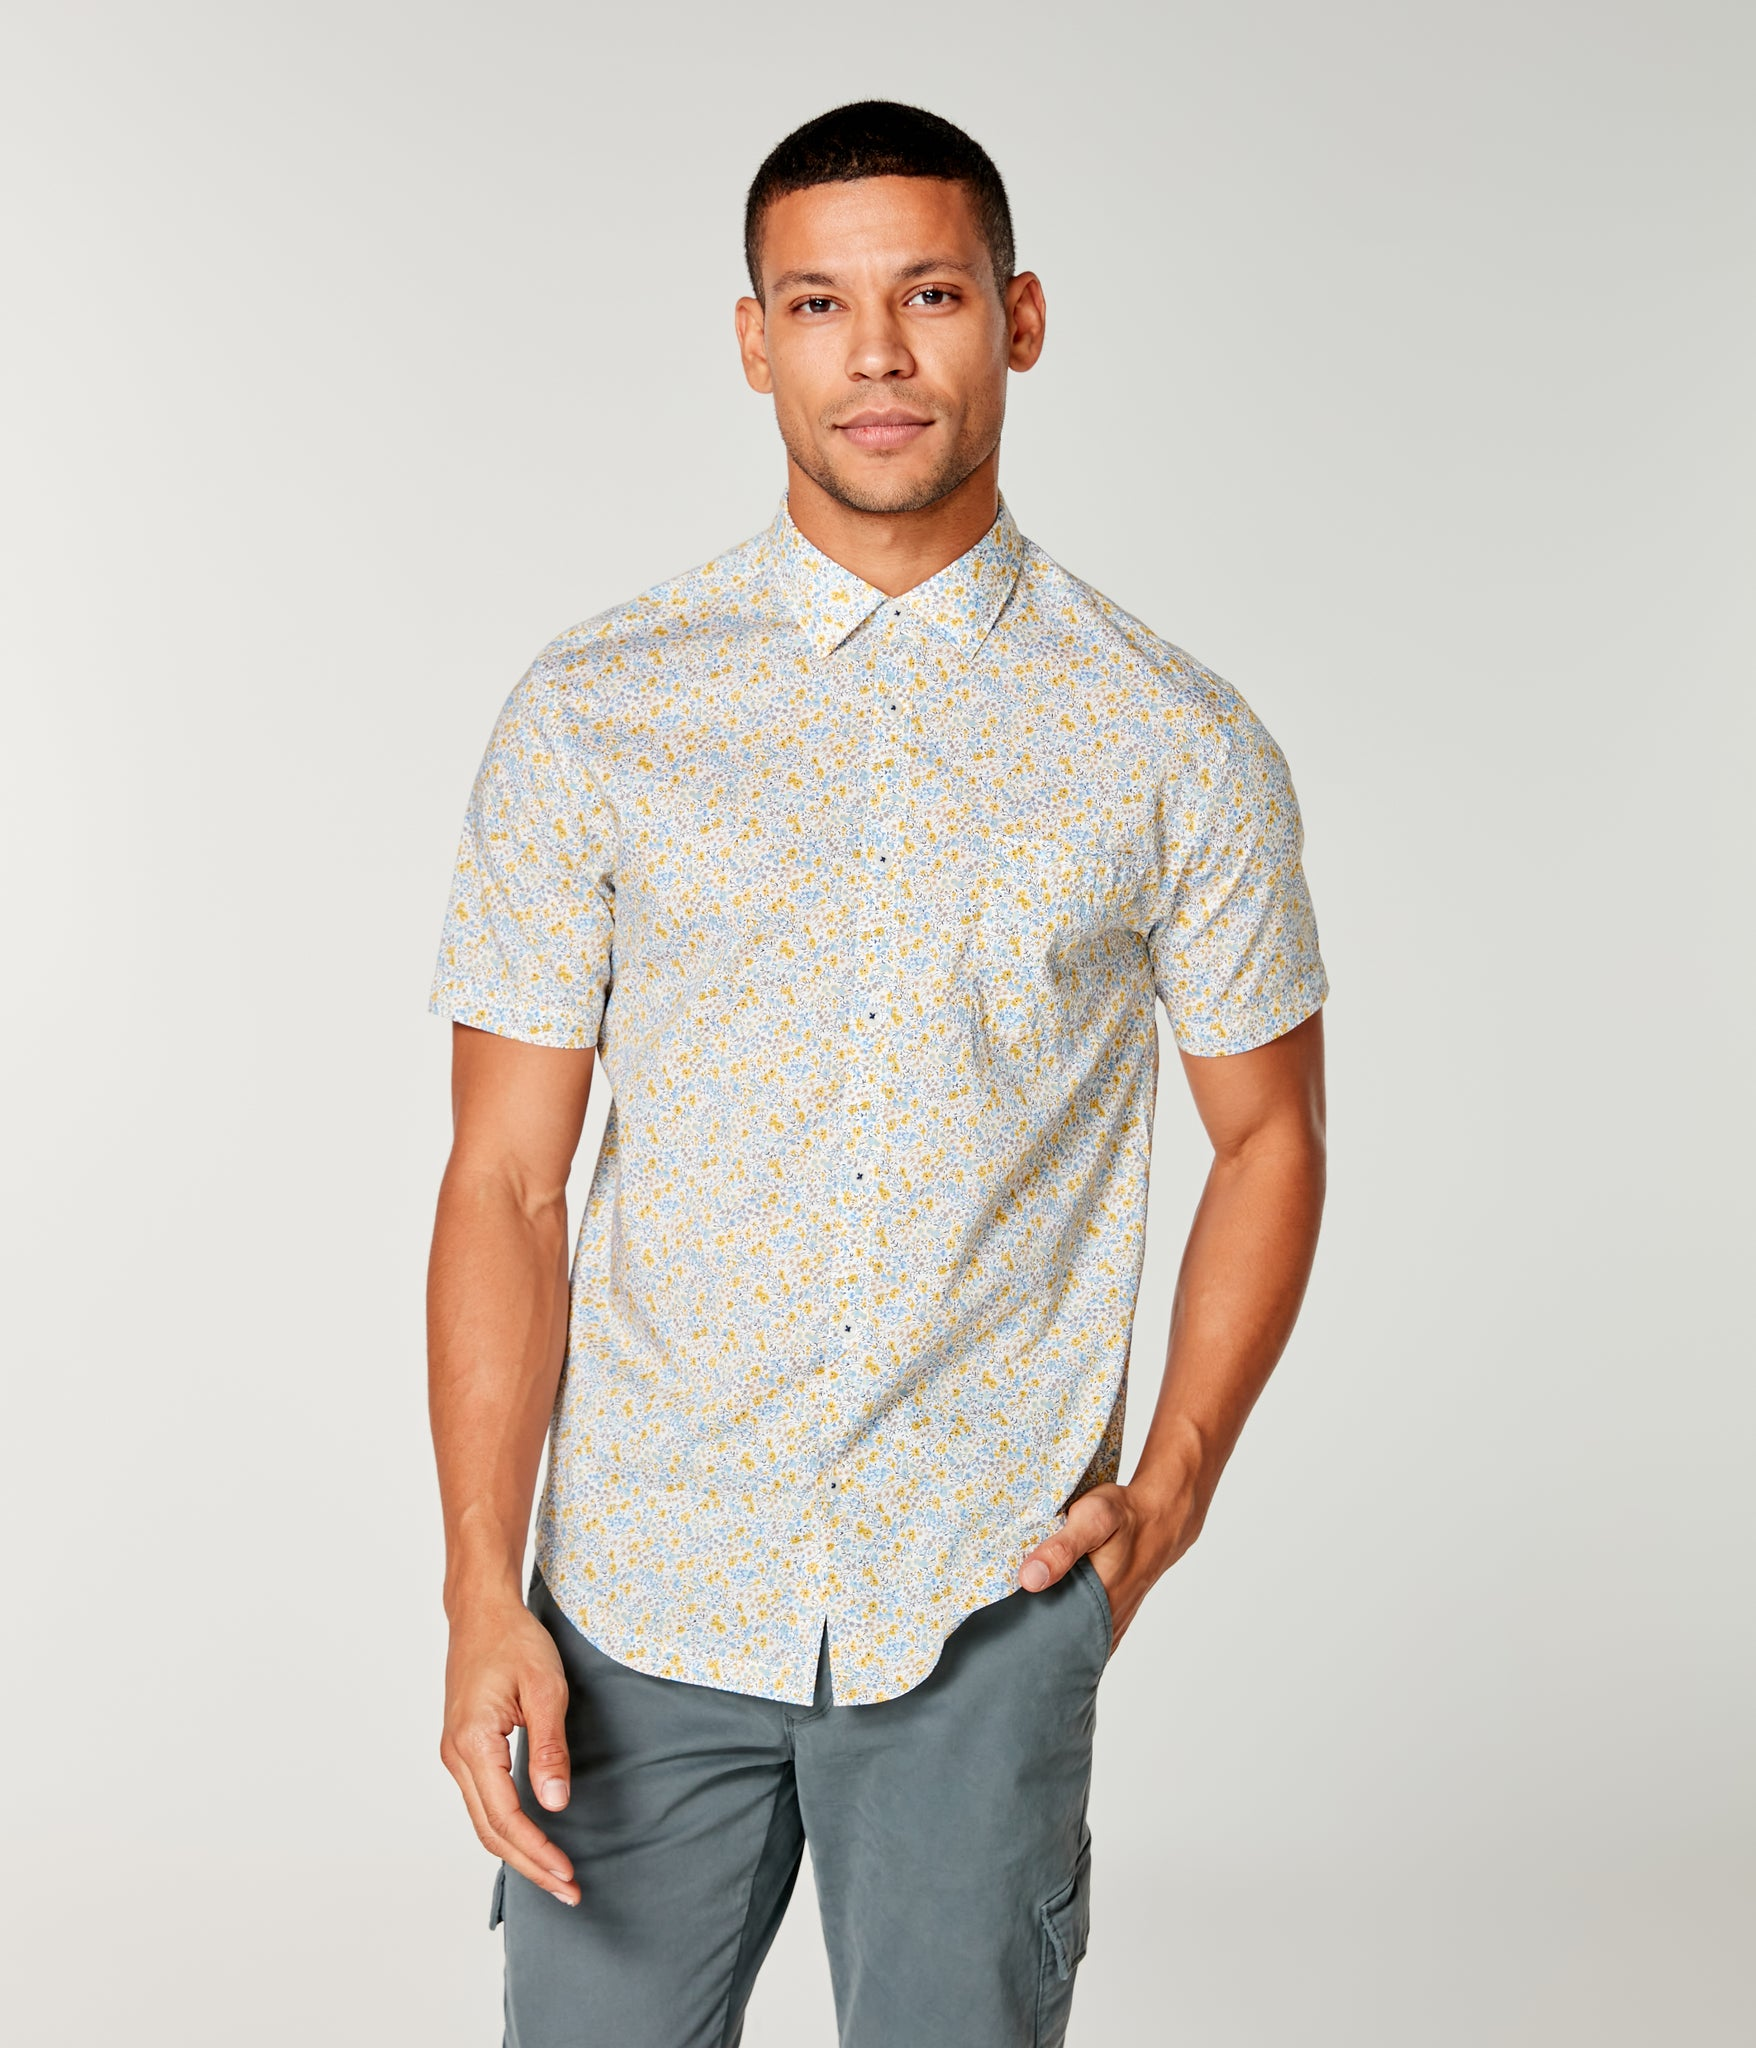 On-Point Print Shirt Short Sleeve - White Micro Daisy Chambray